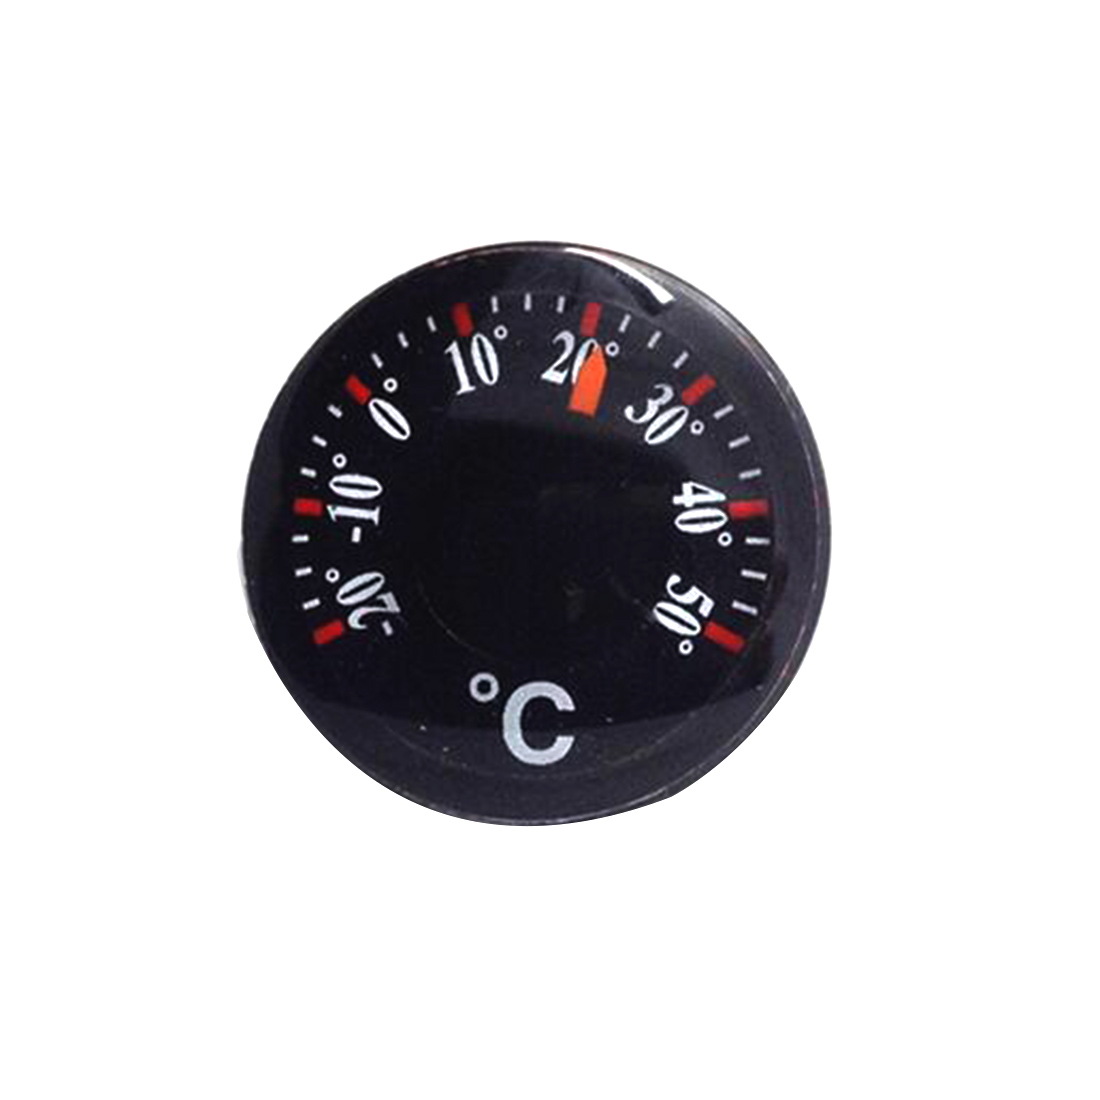 1pcs High Quality Diameter 20mm Plastic Round Mini Thermometer mini spirit Circular Thermograph Celsius hydro thermograph